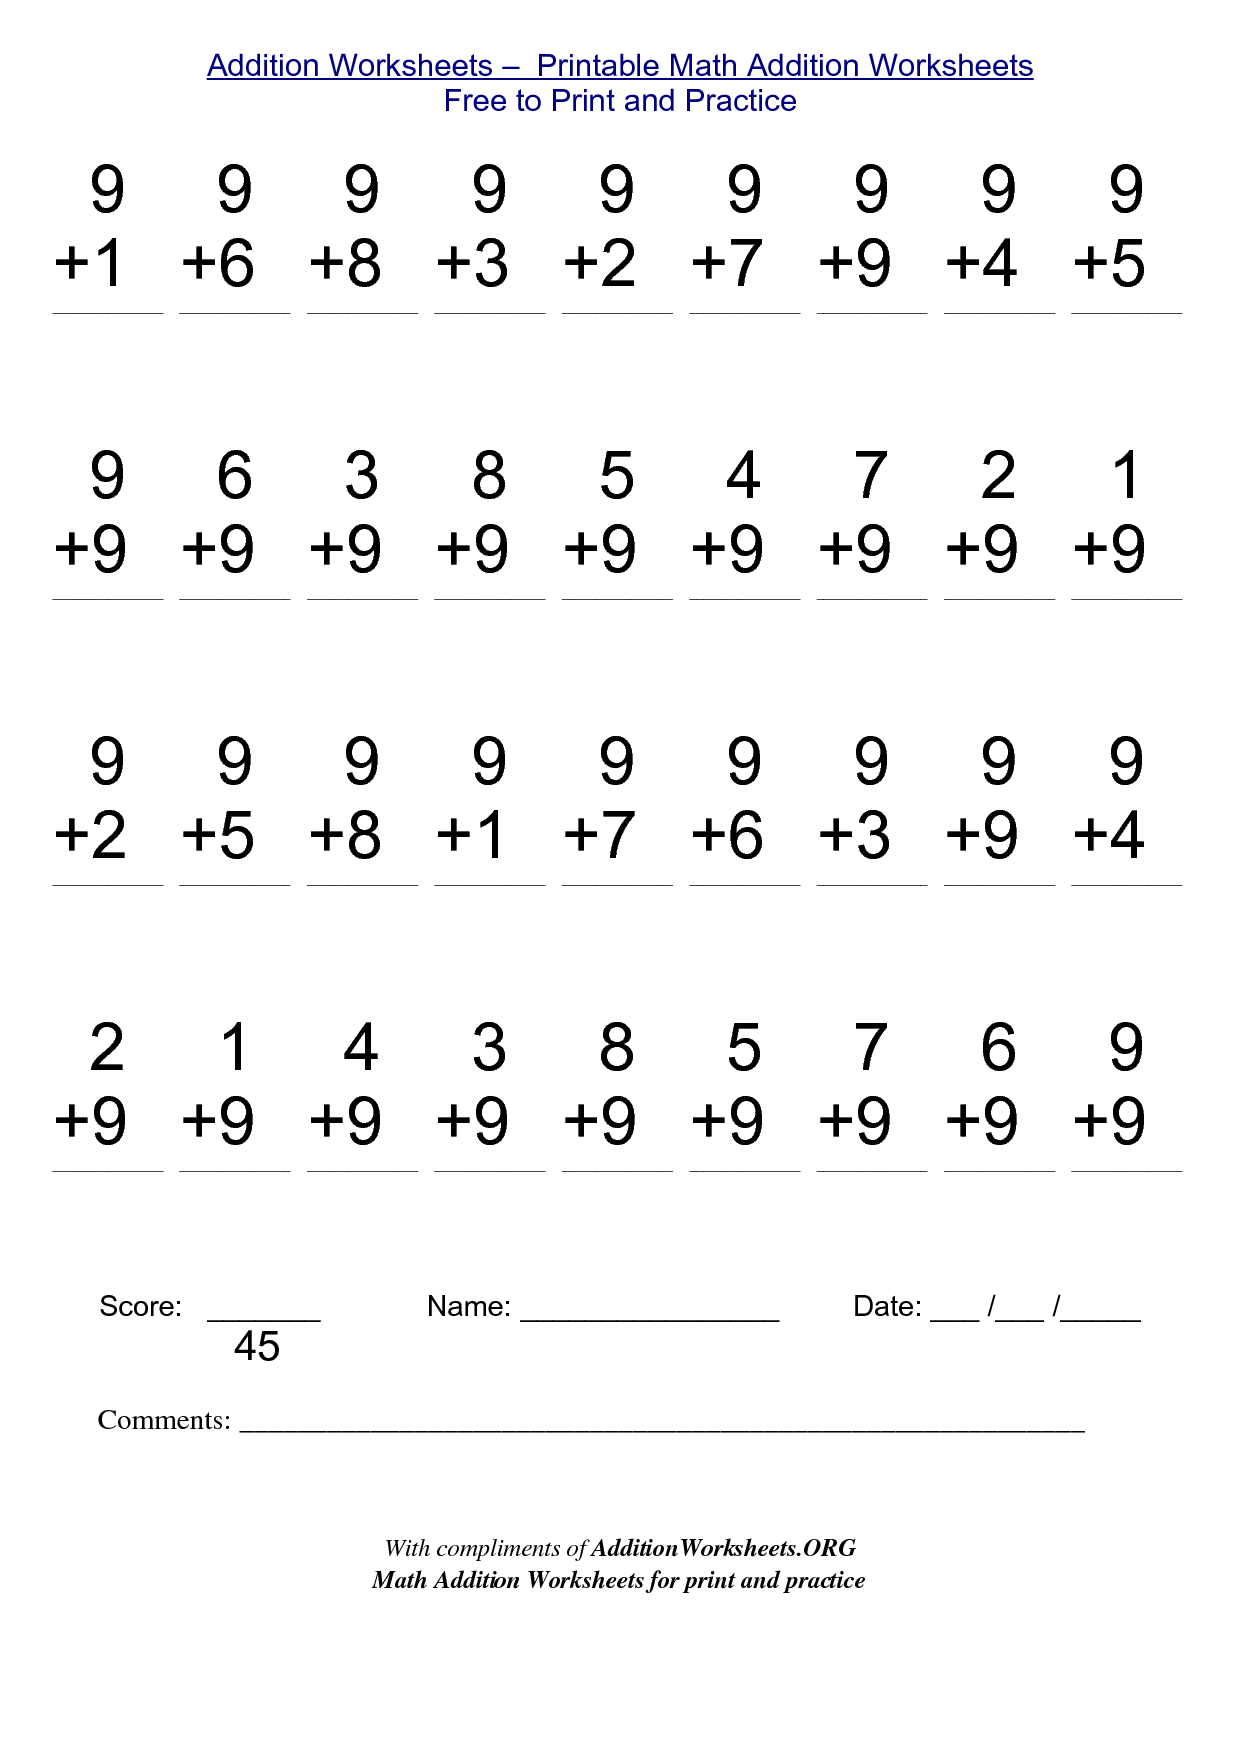 Math Worksheets For Free To Print - Alot | Me | Pinterest | Math - Free Printable Hoy Sheets